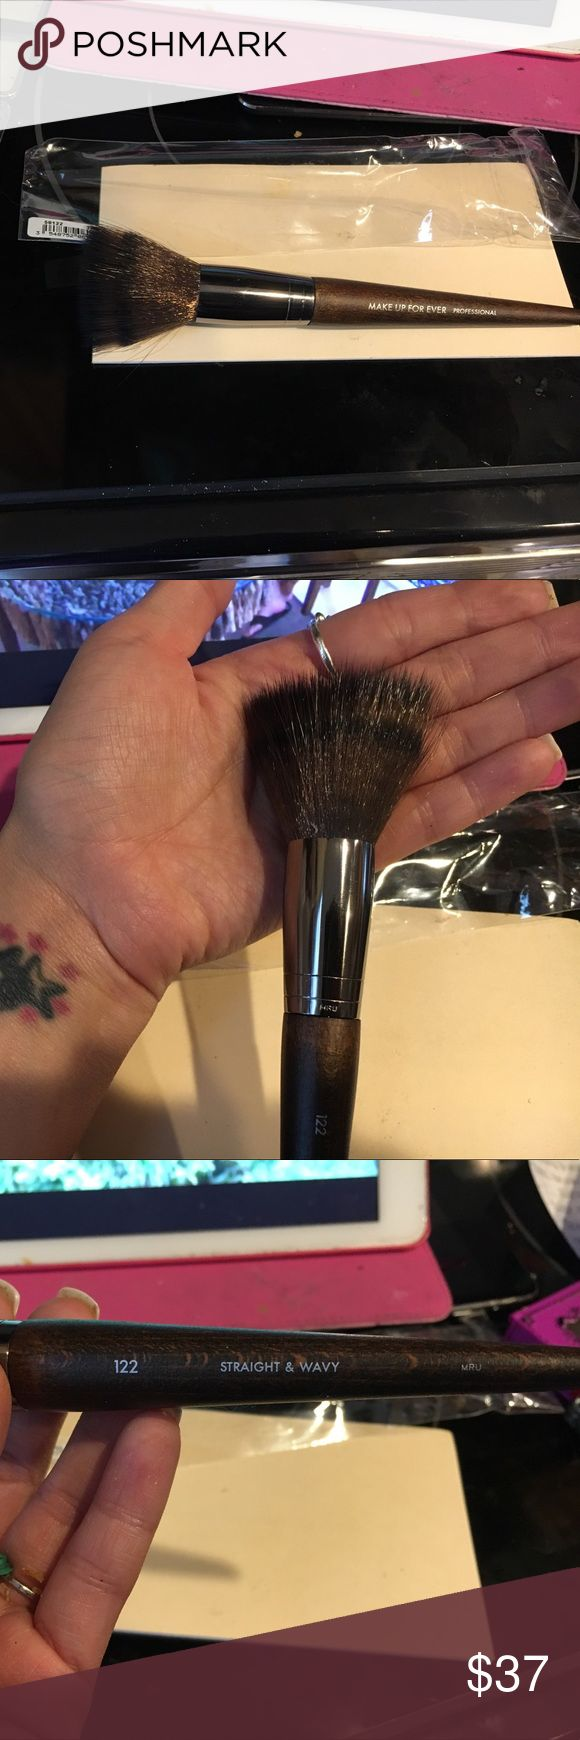 Makeup Forever pro  brush #122 'straight & wavy' Softest brush ever! NIB(bag) taken out only once to for picture reasons; otherwise have never taken it out before. Wat it is: Lg.foundation brush to create a lightweight airbrush effect. versatile brush used for varying applic tech. Delicate/flexible/soft end allows for translucent foundation result while firmness allows u to build coverage if desired. (See last picture for more brush information) so worth it!! 💋 Makeup Forever Makeup Brushes…